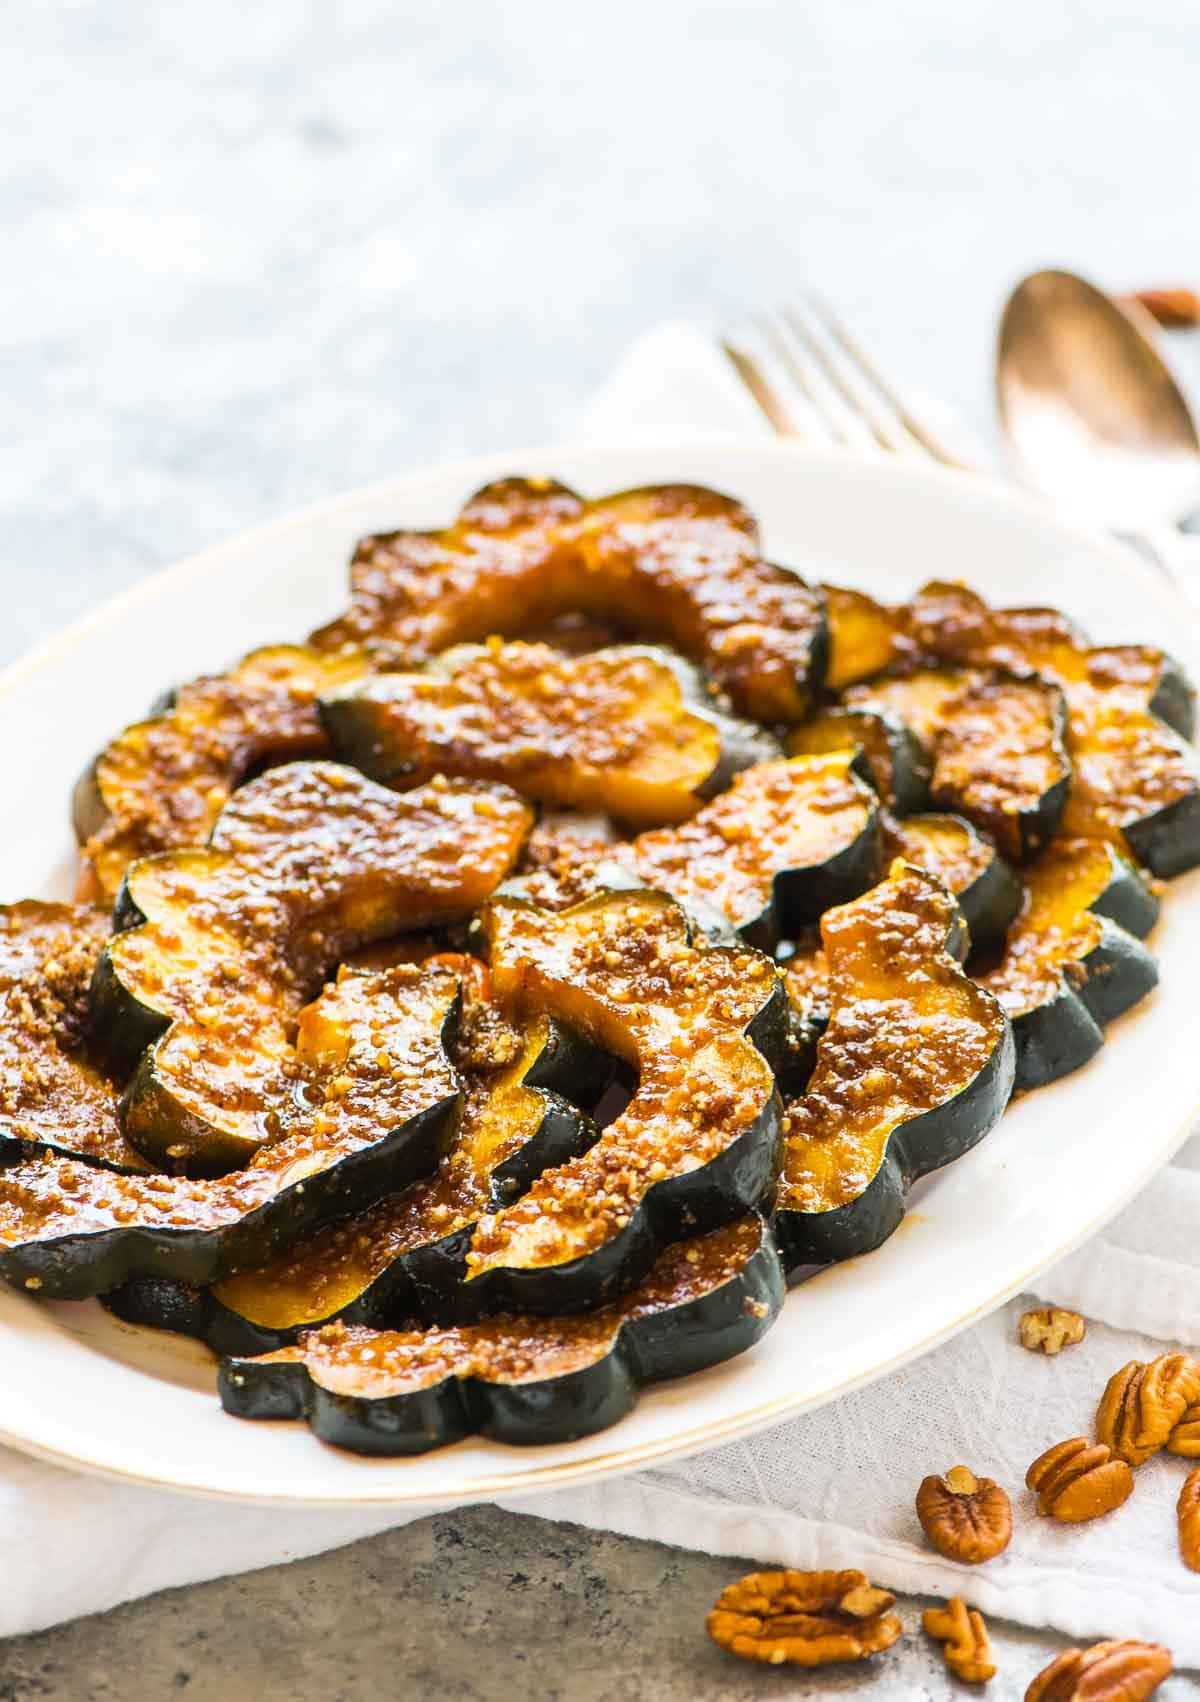 Baked Acorn Squash Slices with Brown Sugar and Pecans. Less than 30 minutes in the oven and just a few simple ingredients are all that you need for this delicious recipe! Great for holidays or a fall side. Recipe at wellplated.com | @wellplated